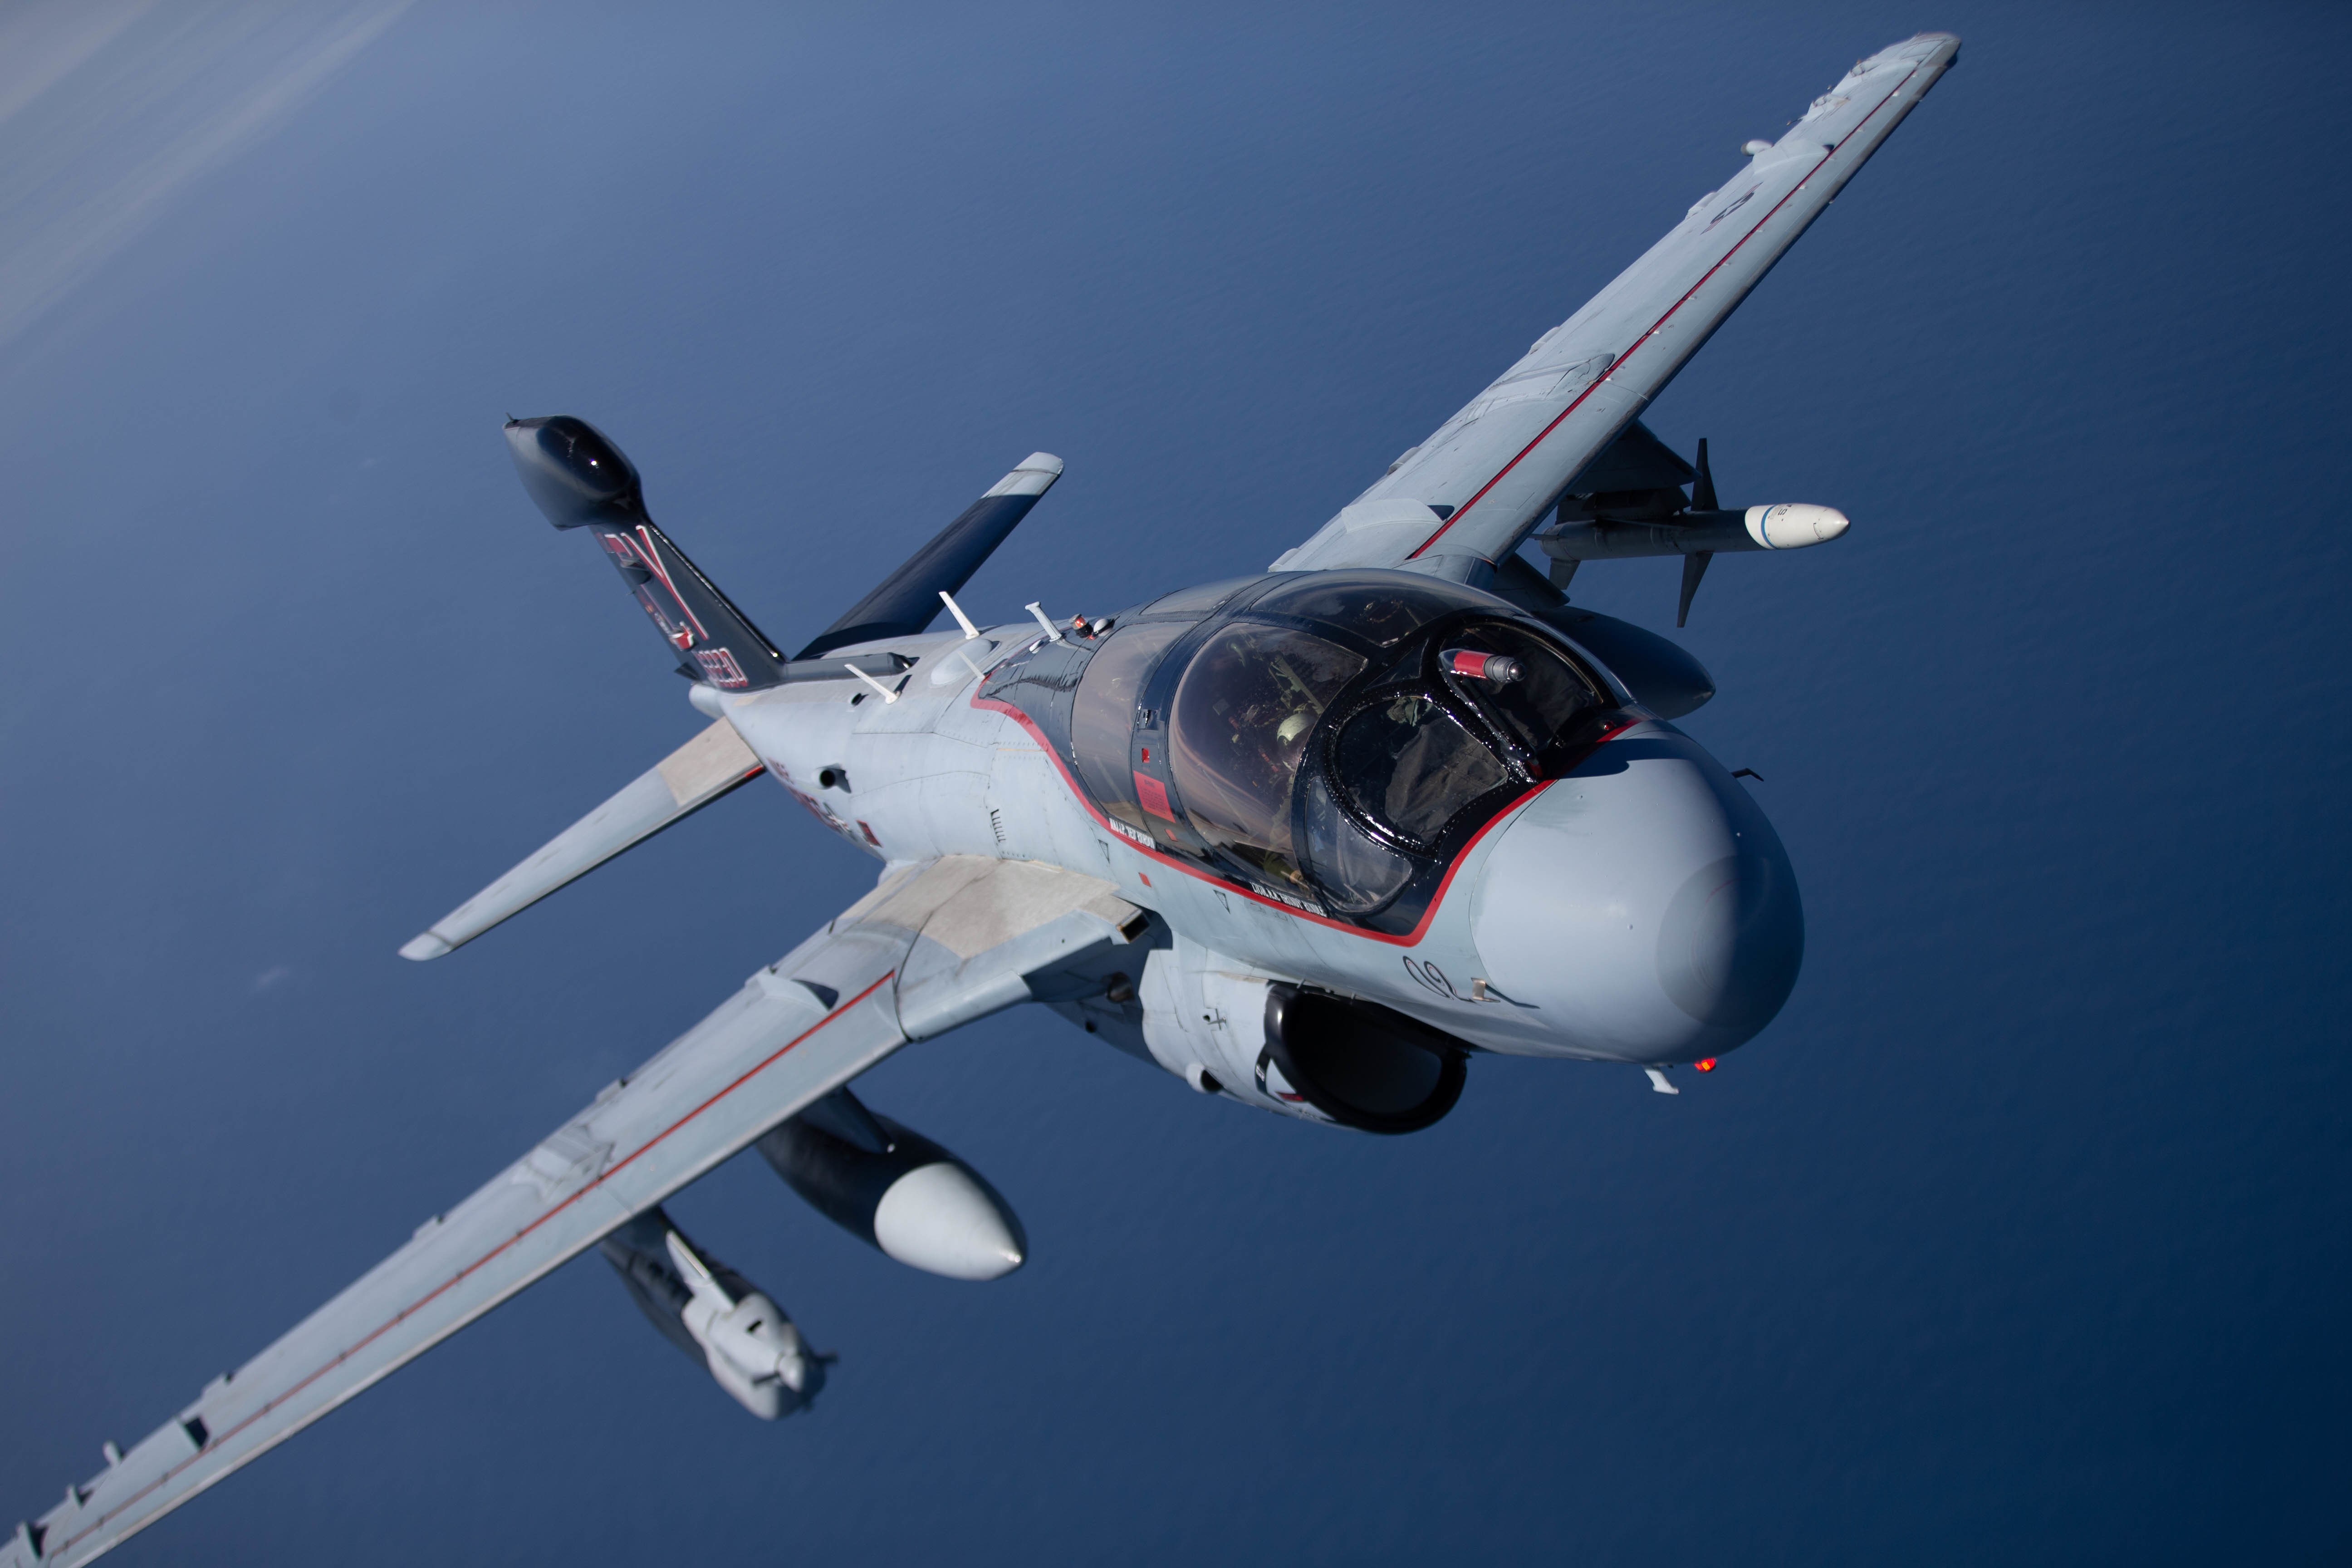 US Marine Corps retires venerable Prowler electronic warfare jet